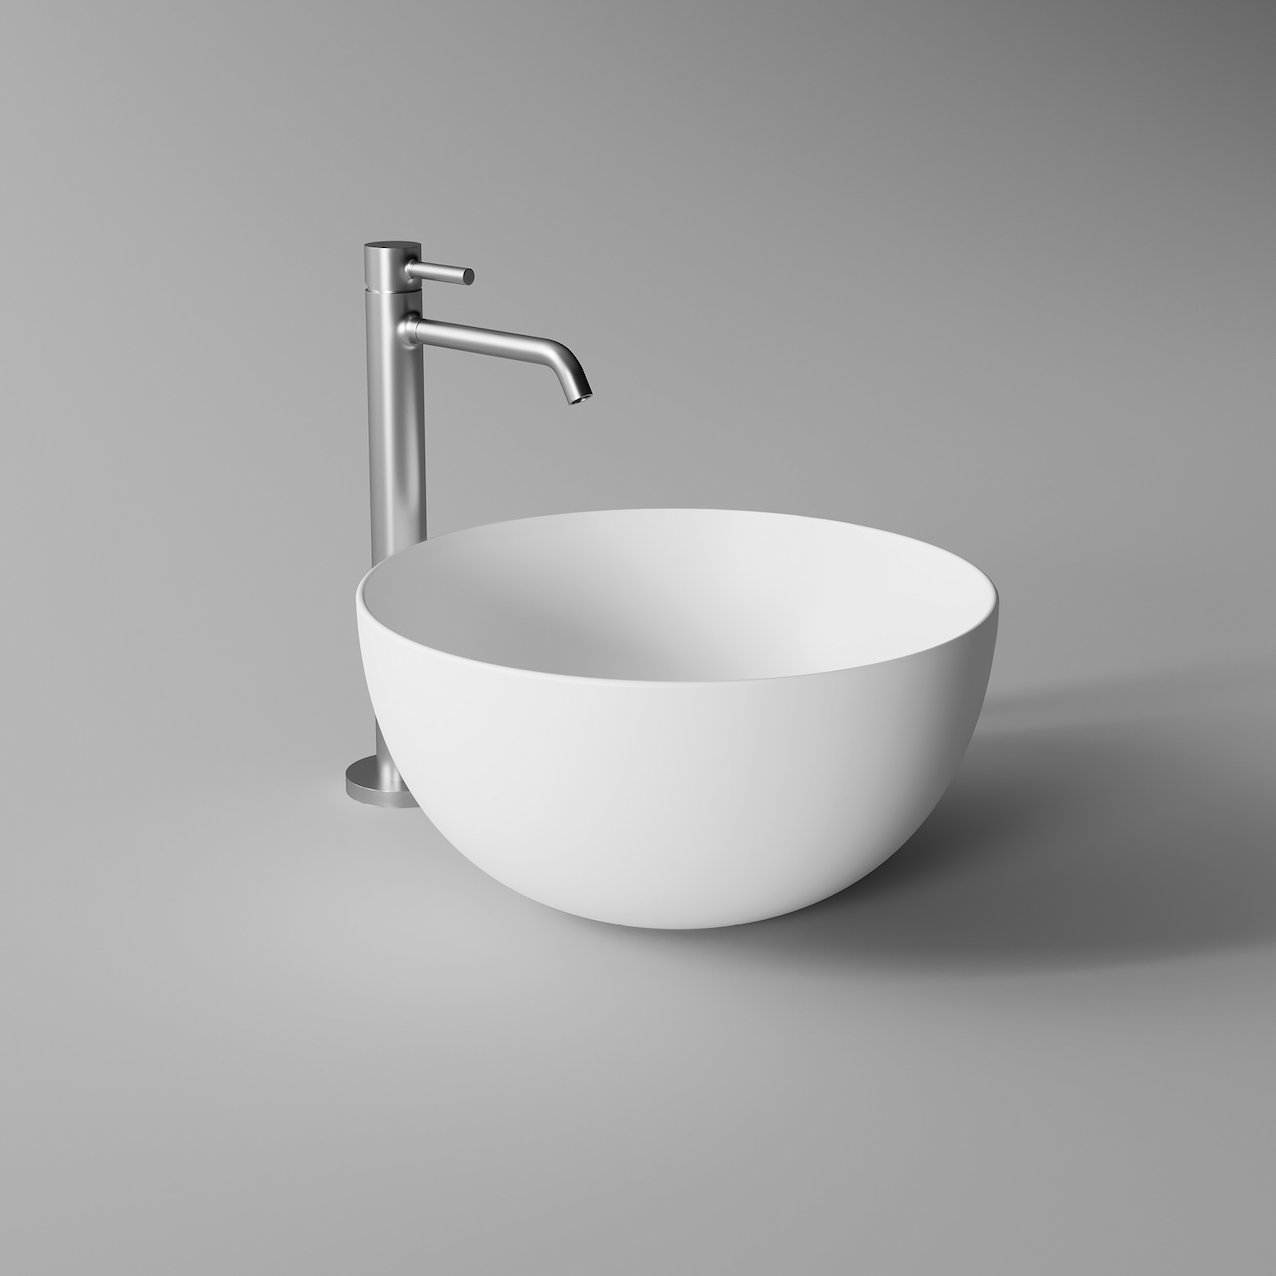 Washbasin UNICA bowl